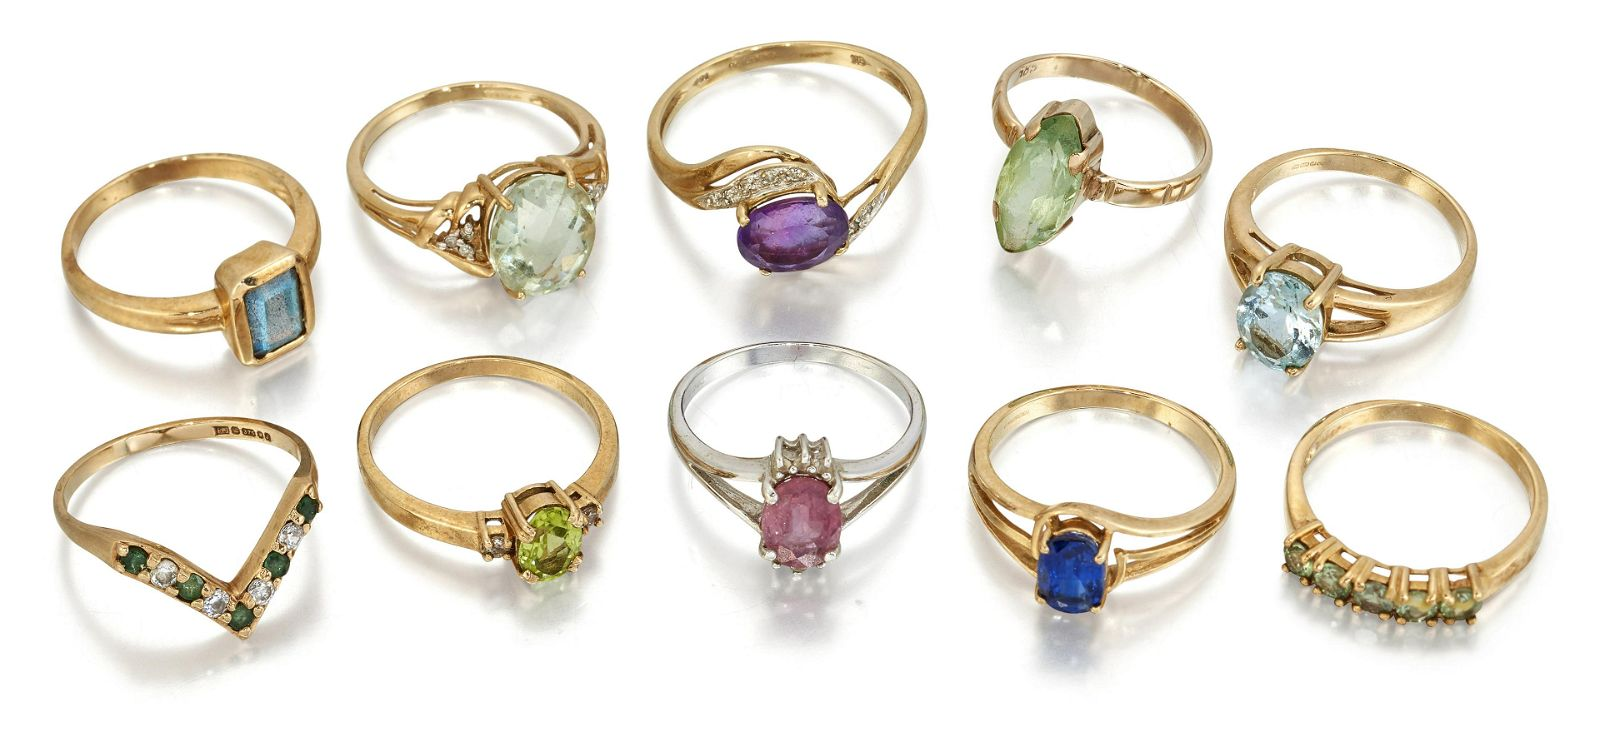 A QUANTITY OF 9 CARAT GOLD GEMSET RINGS, to include